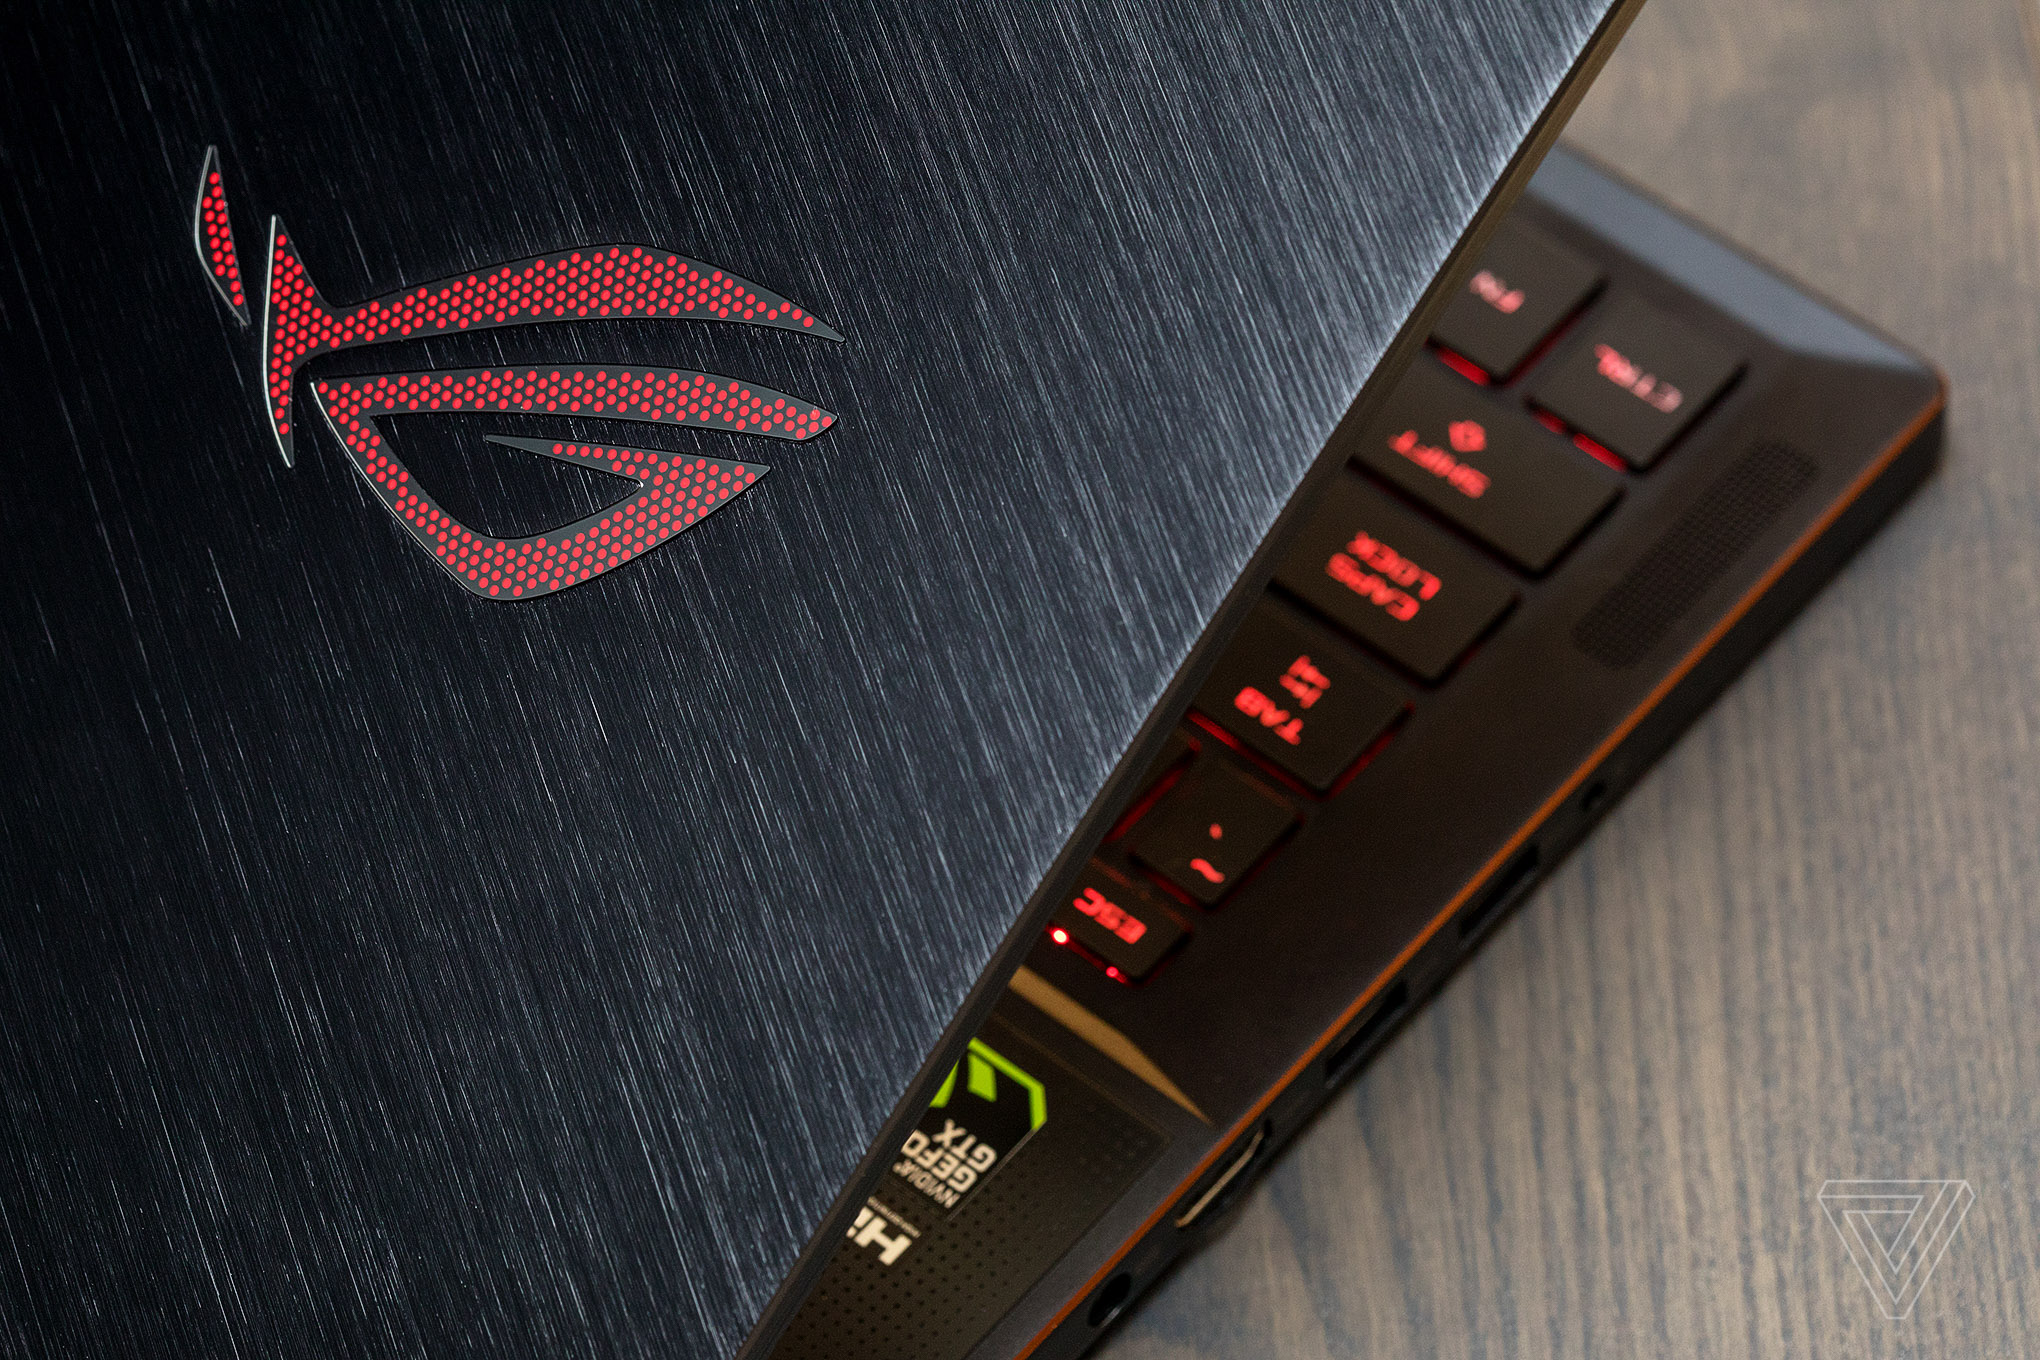 itech-dude-contents-akrales_170818_1922_0090 Asus ROG Zephyrus review: great at gaming, but not much else | iTech Dude - The Technology Blog